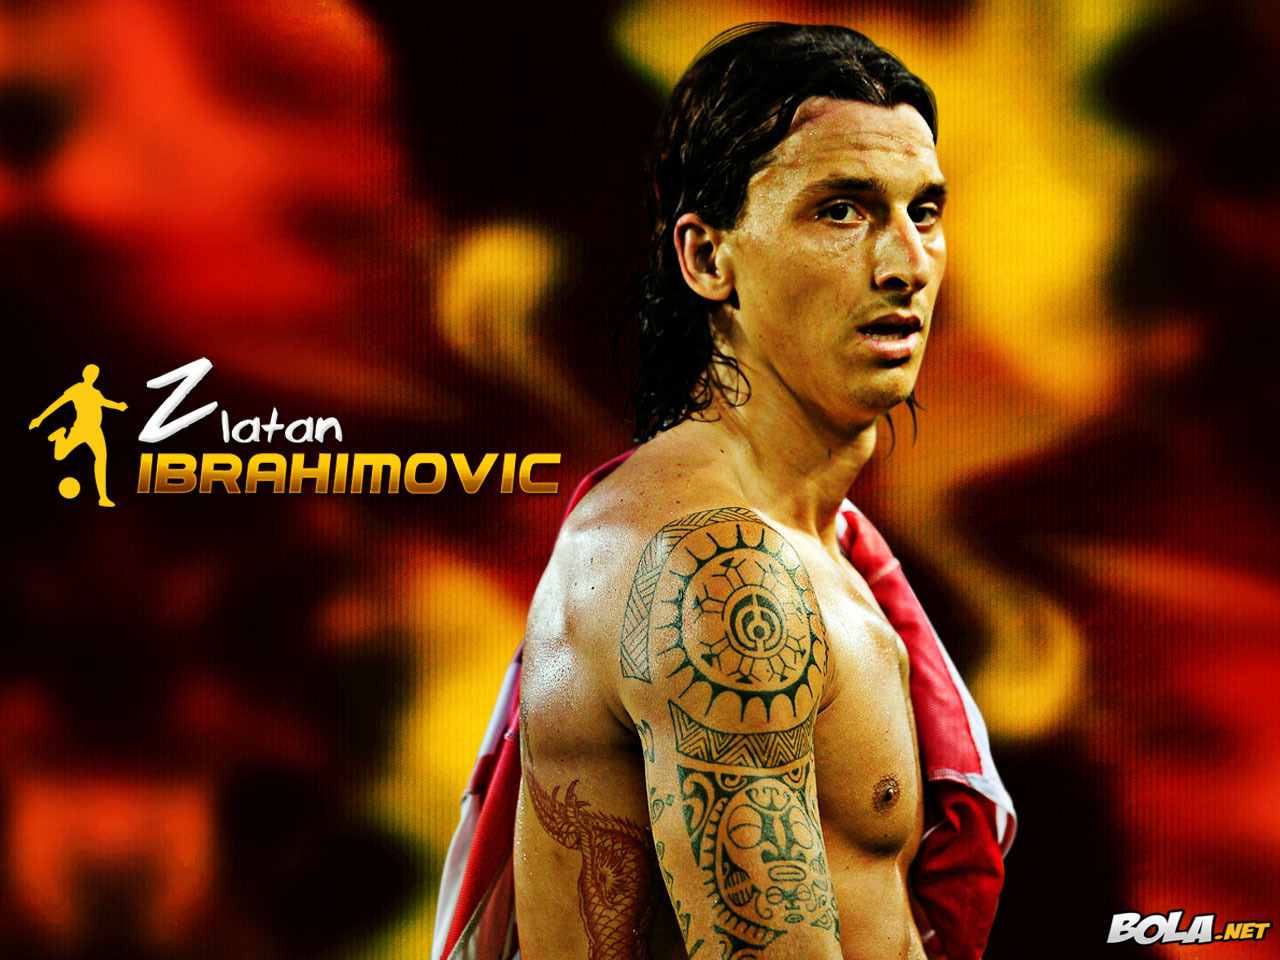 zlatan ibrahimovic profile wallpaper 2012 wallpapers. Black Bedroom Furniture Sets. Home Design Ideas